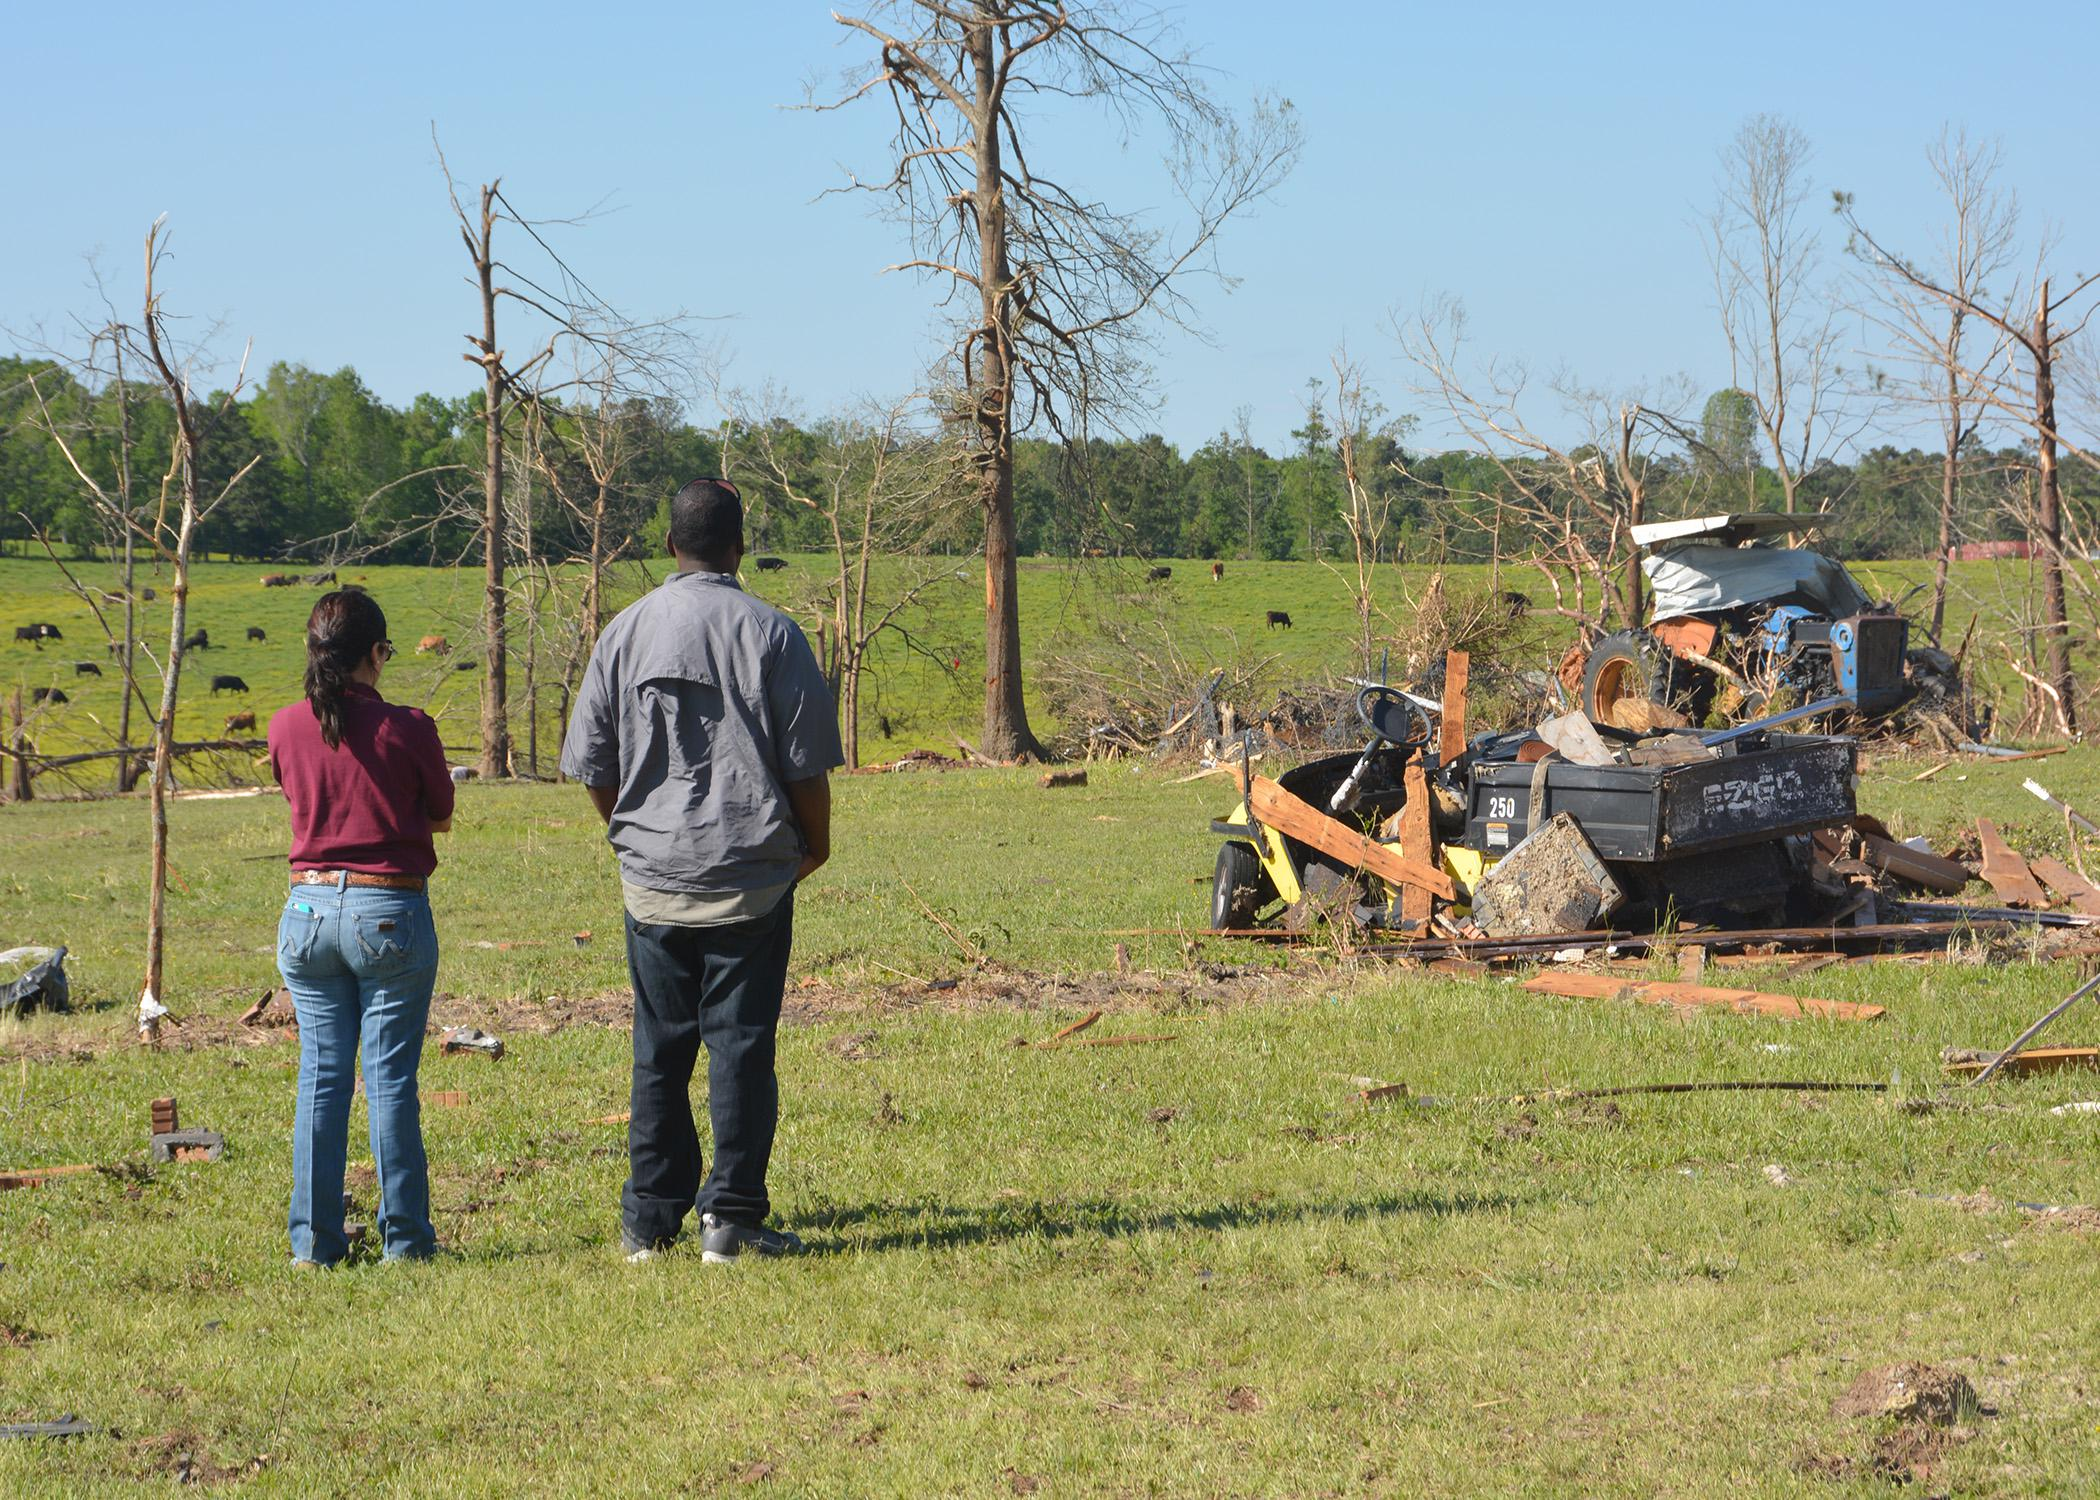 A specialist with the Mississippi State University Extension Service surveys agricultural damage with a Winston County resident following the tornado that hit on April 28, 2014. A grant will enable Extension to re-evaluate disaster efforts in communities across the state. (File photo by MSU Ag Communications/Linda Breazeale)